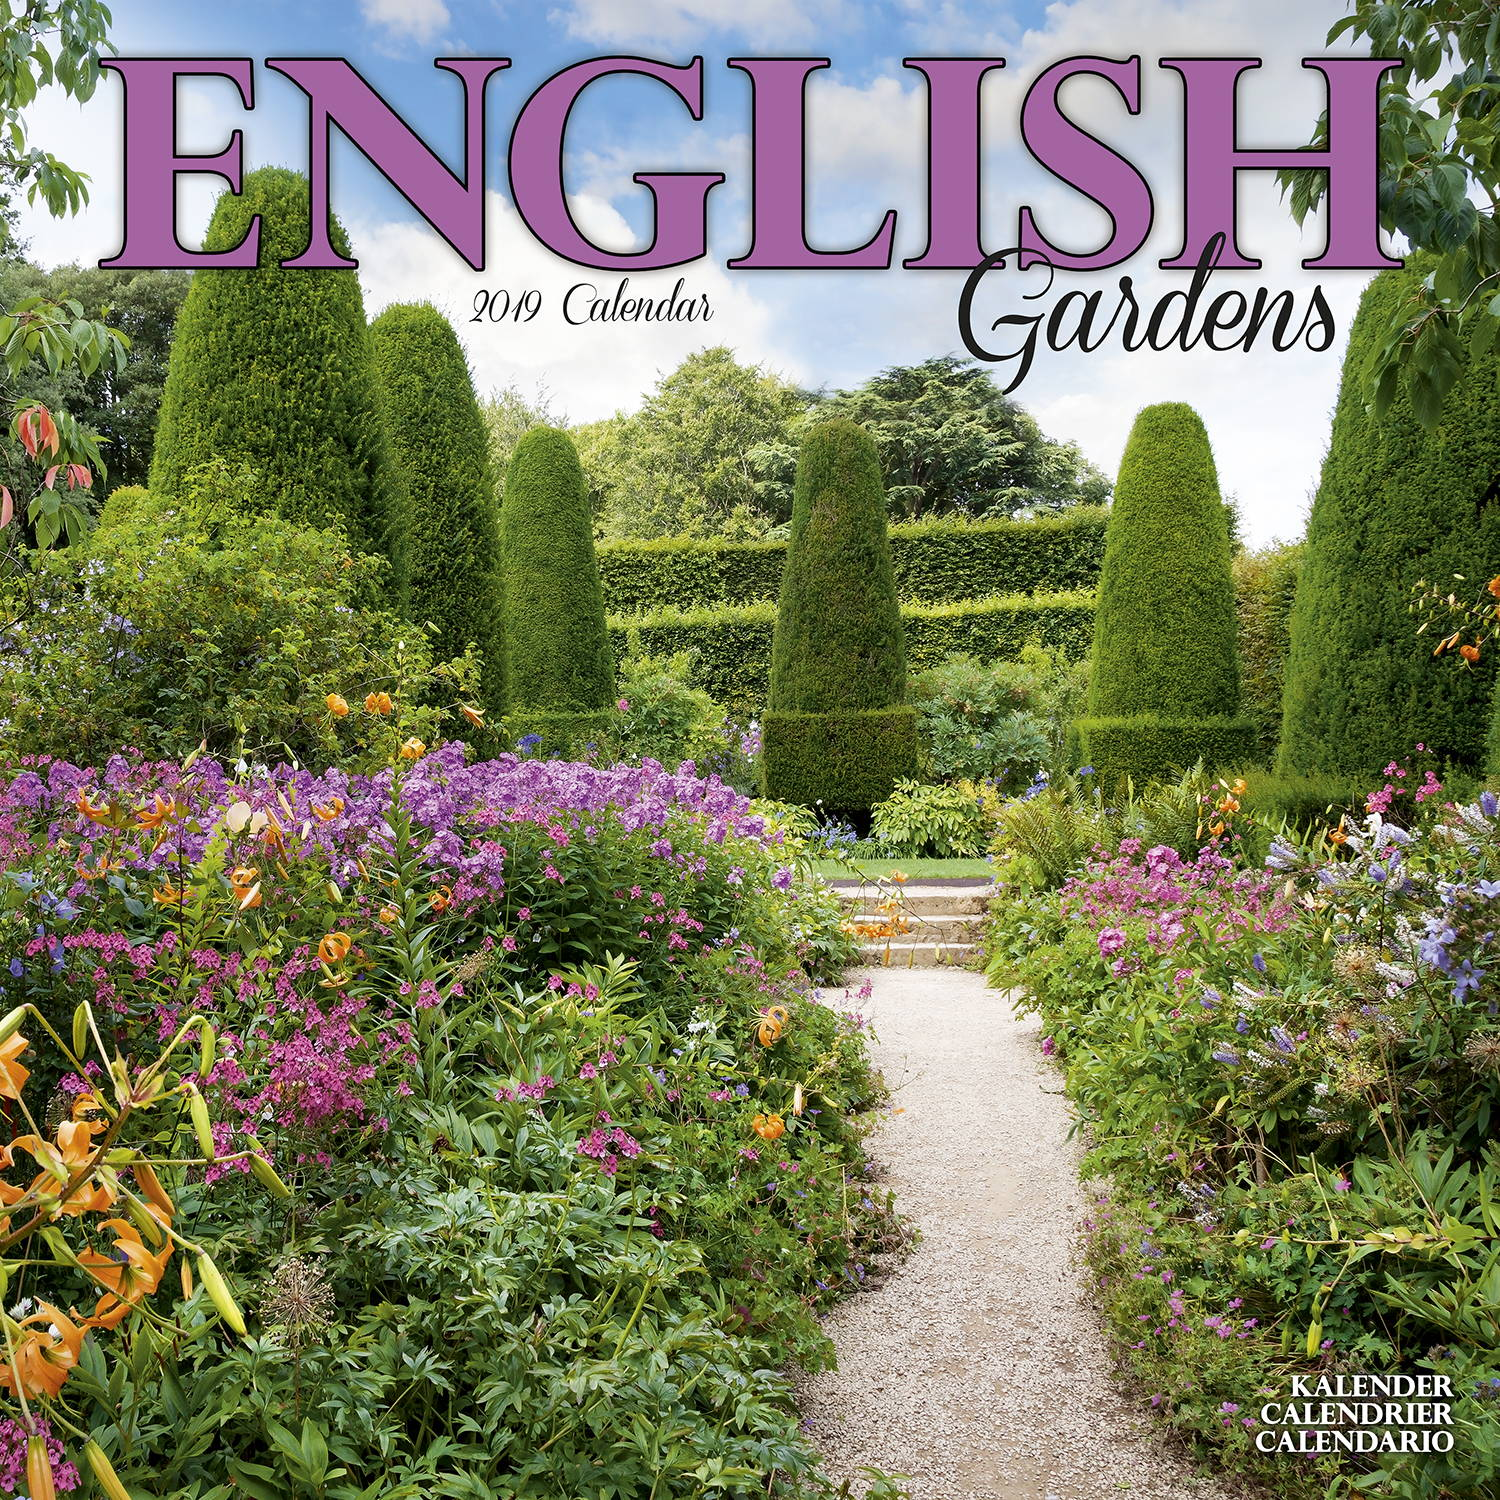 Landscaping Ideas In 2019: English Gardens Calendar 2019